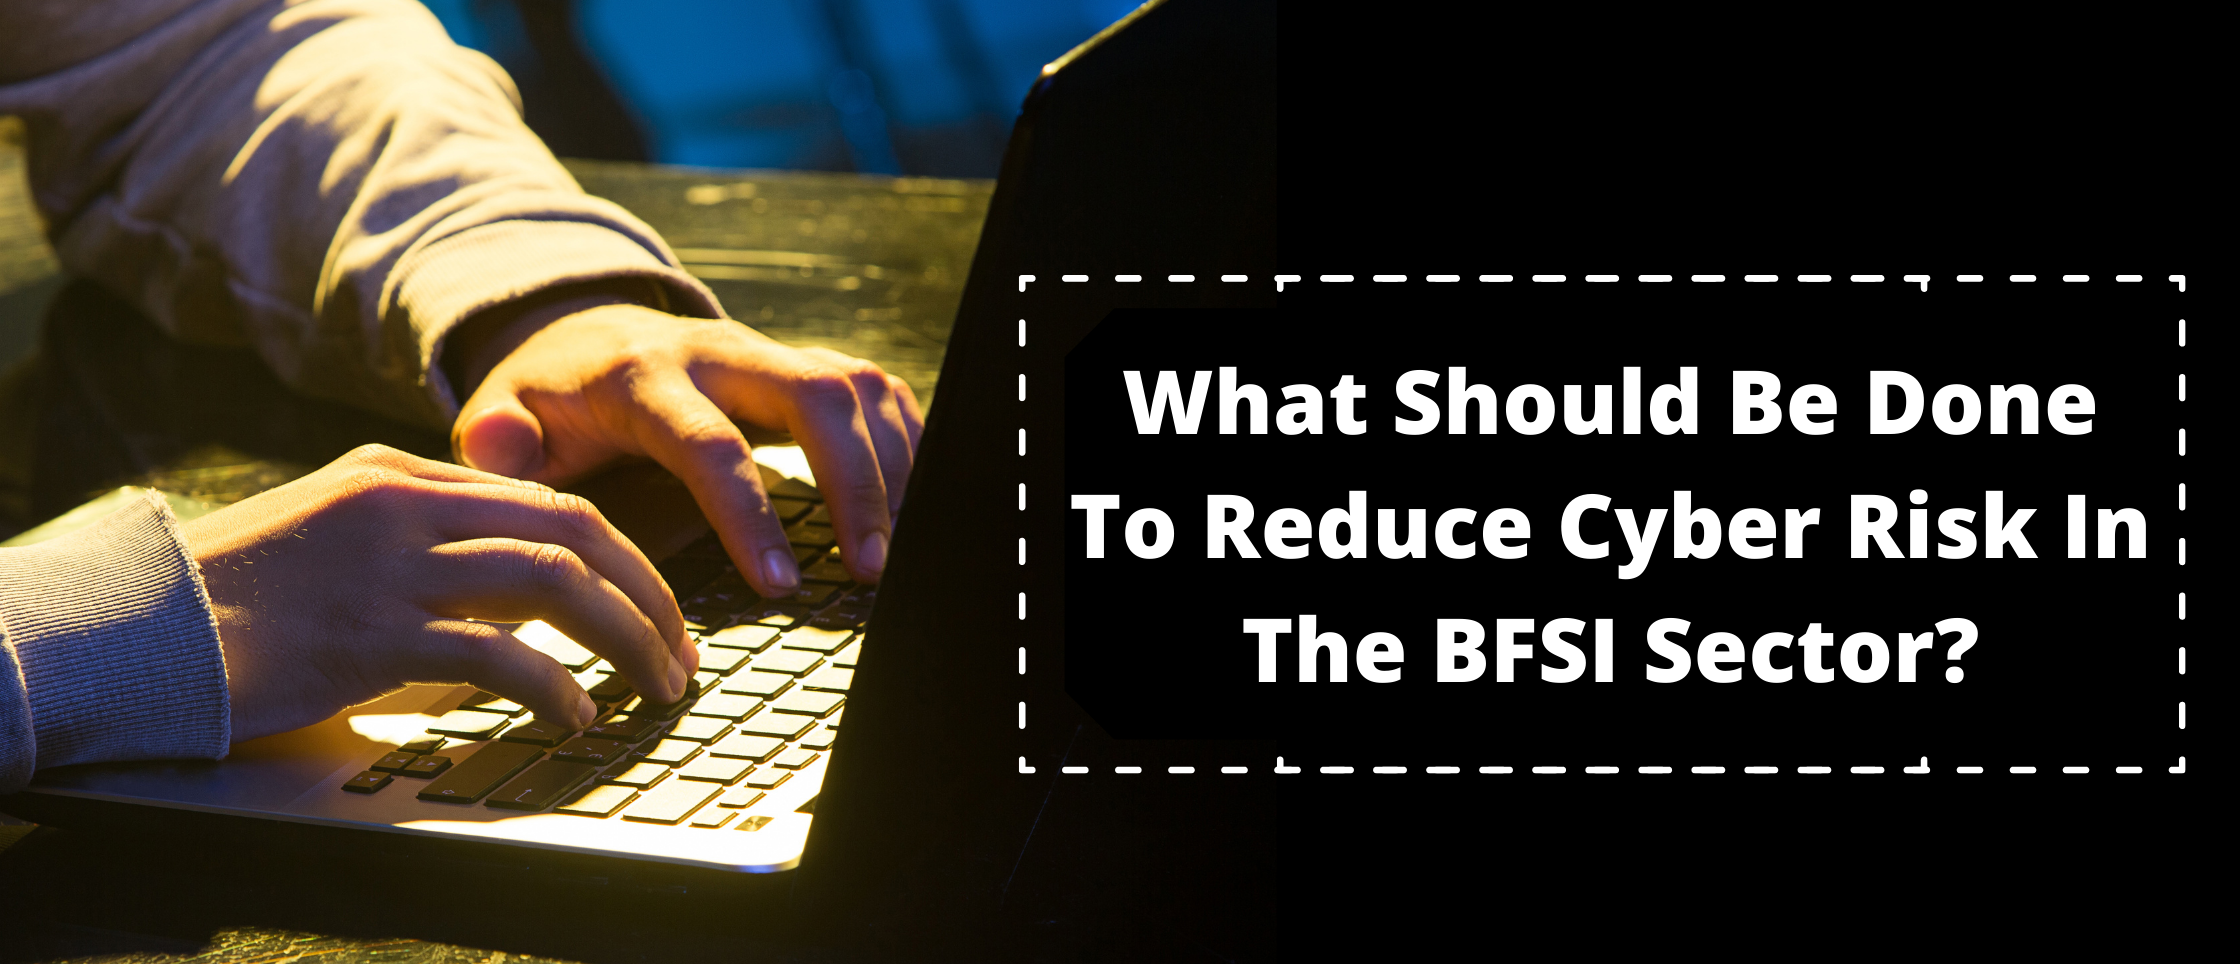 What Should Be Done To Reduce Cyber Risk In The BFSI Sector?